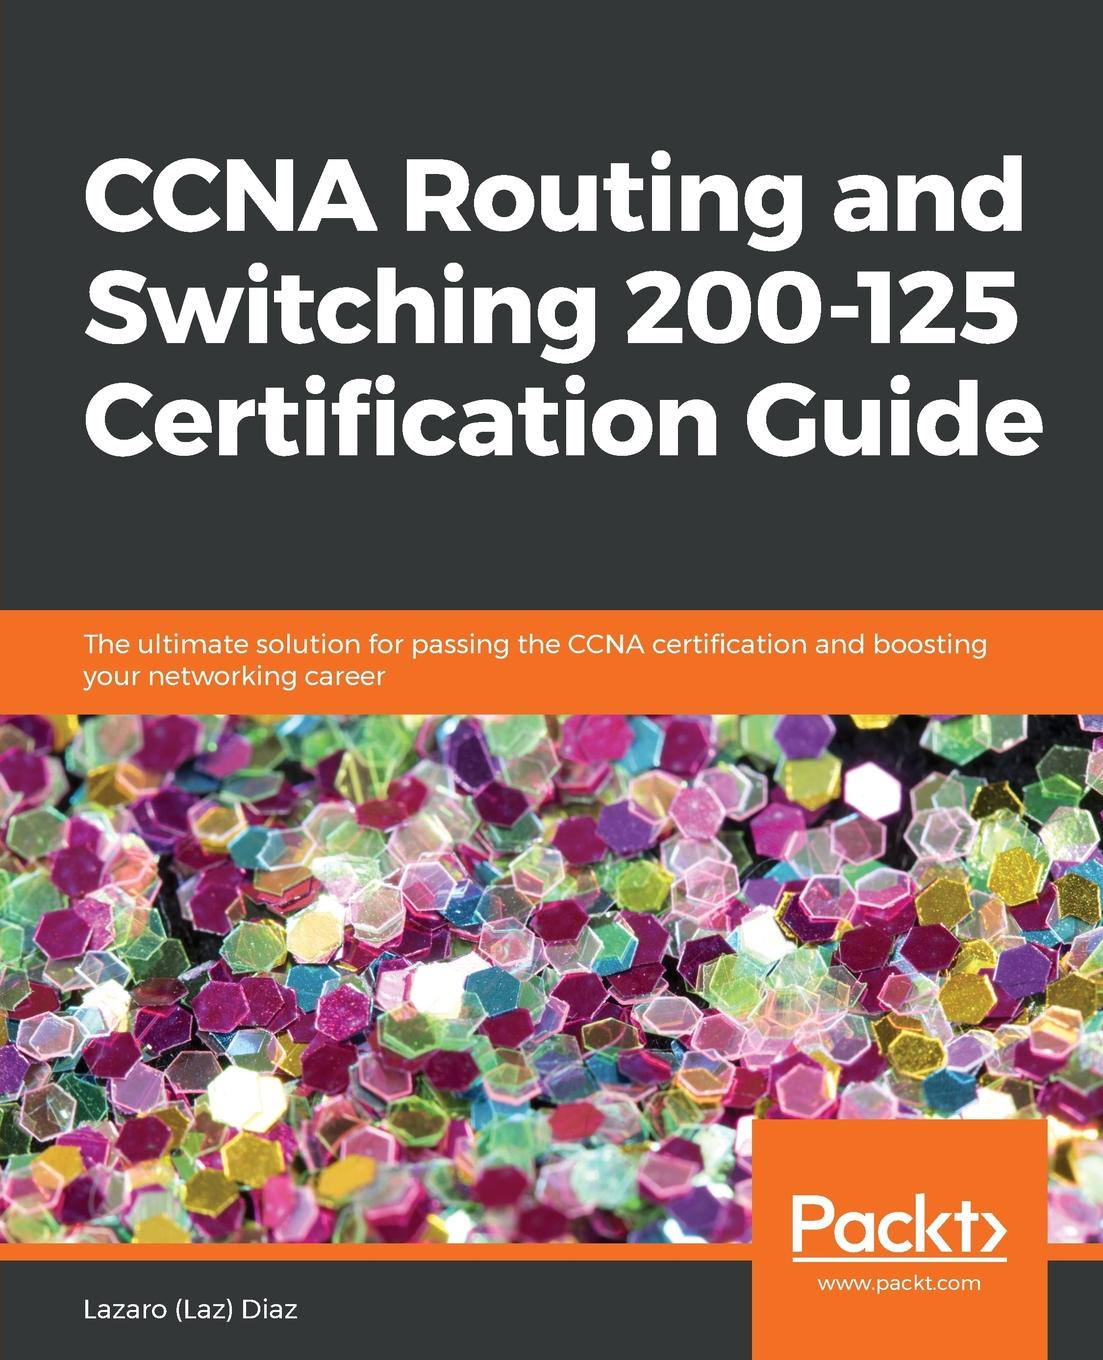 LLazaro (Laz) Diaz CCNA Routing and Switching 200-125 Certification Guide silviu angelescu ccna certification all in one for dummies